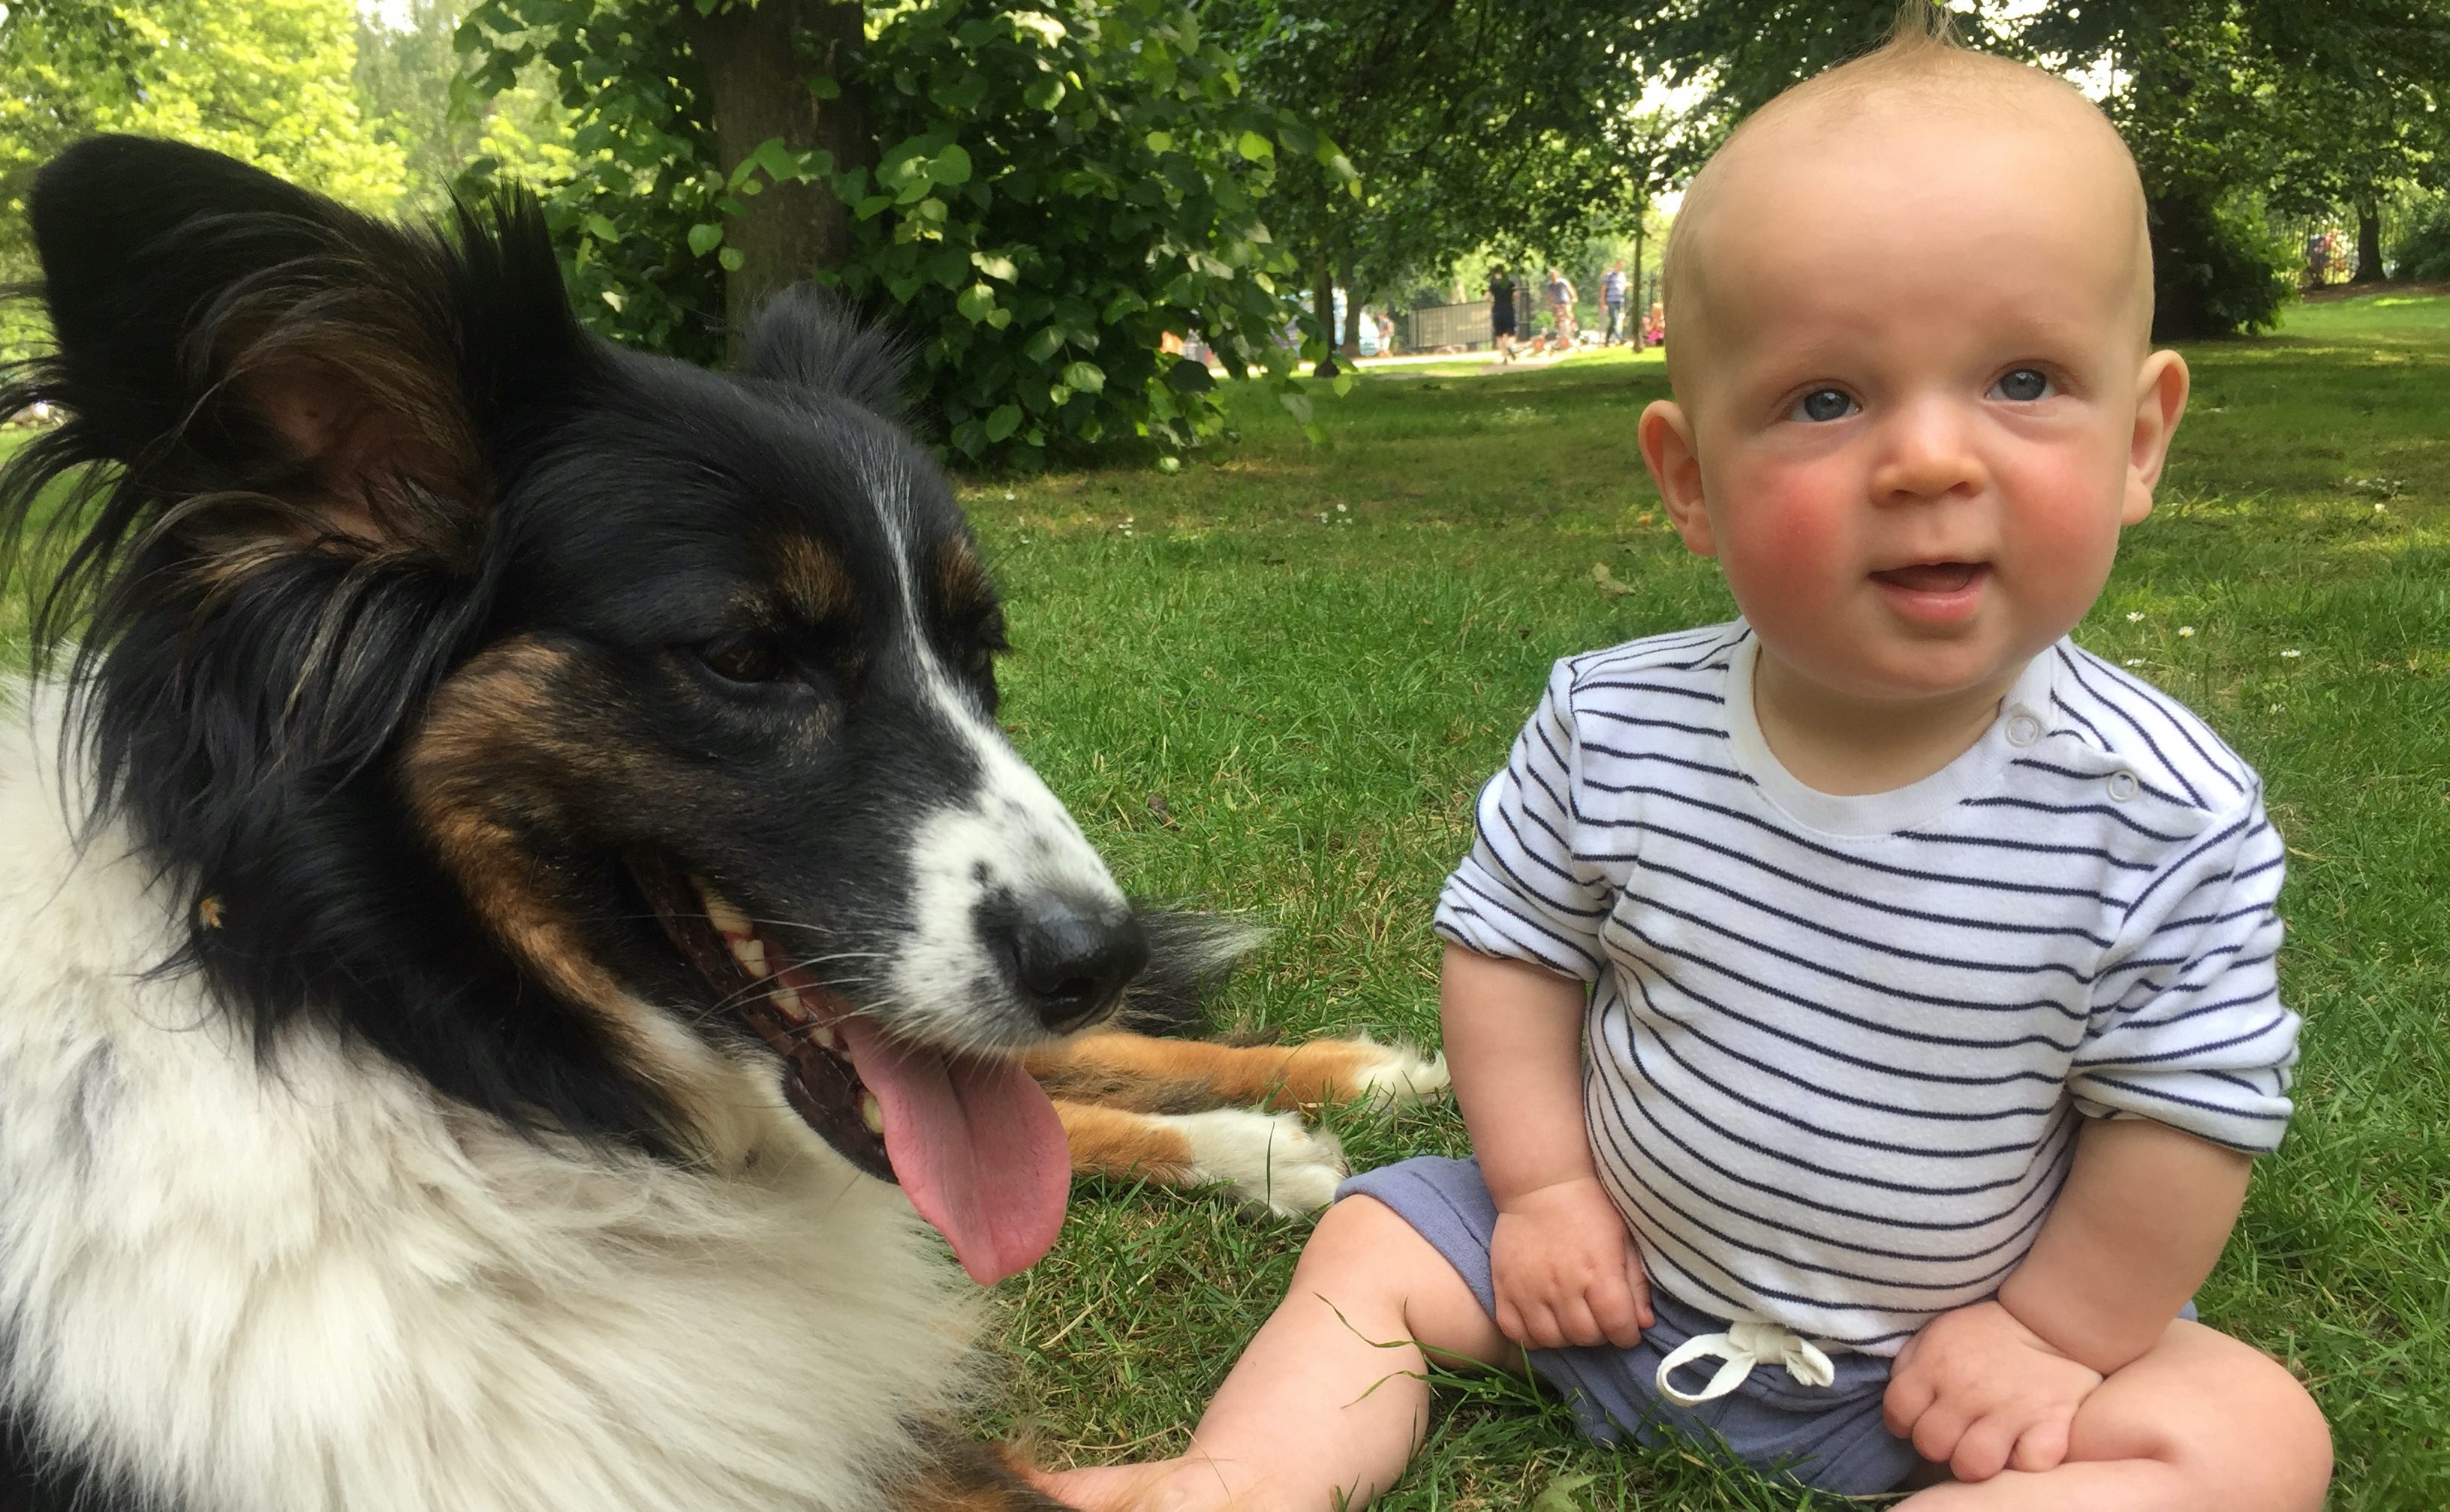 Dogs and babies can become firm friends when introduced properly